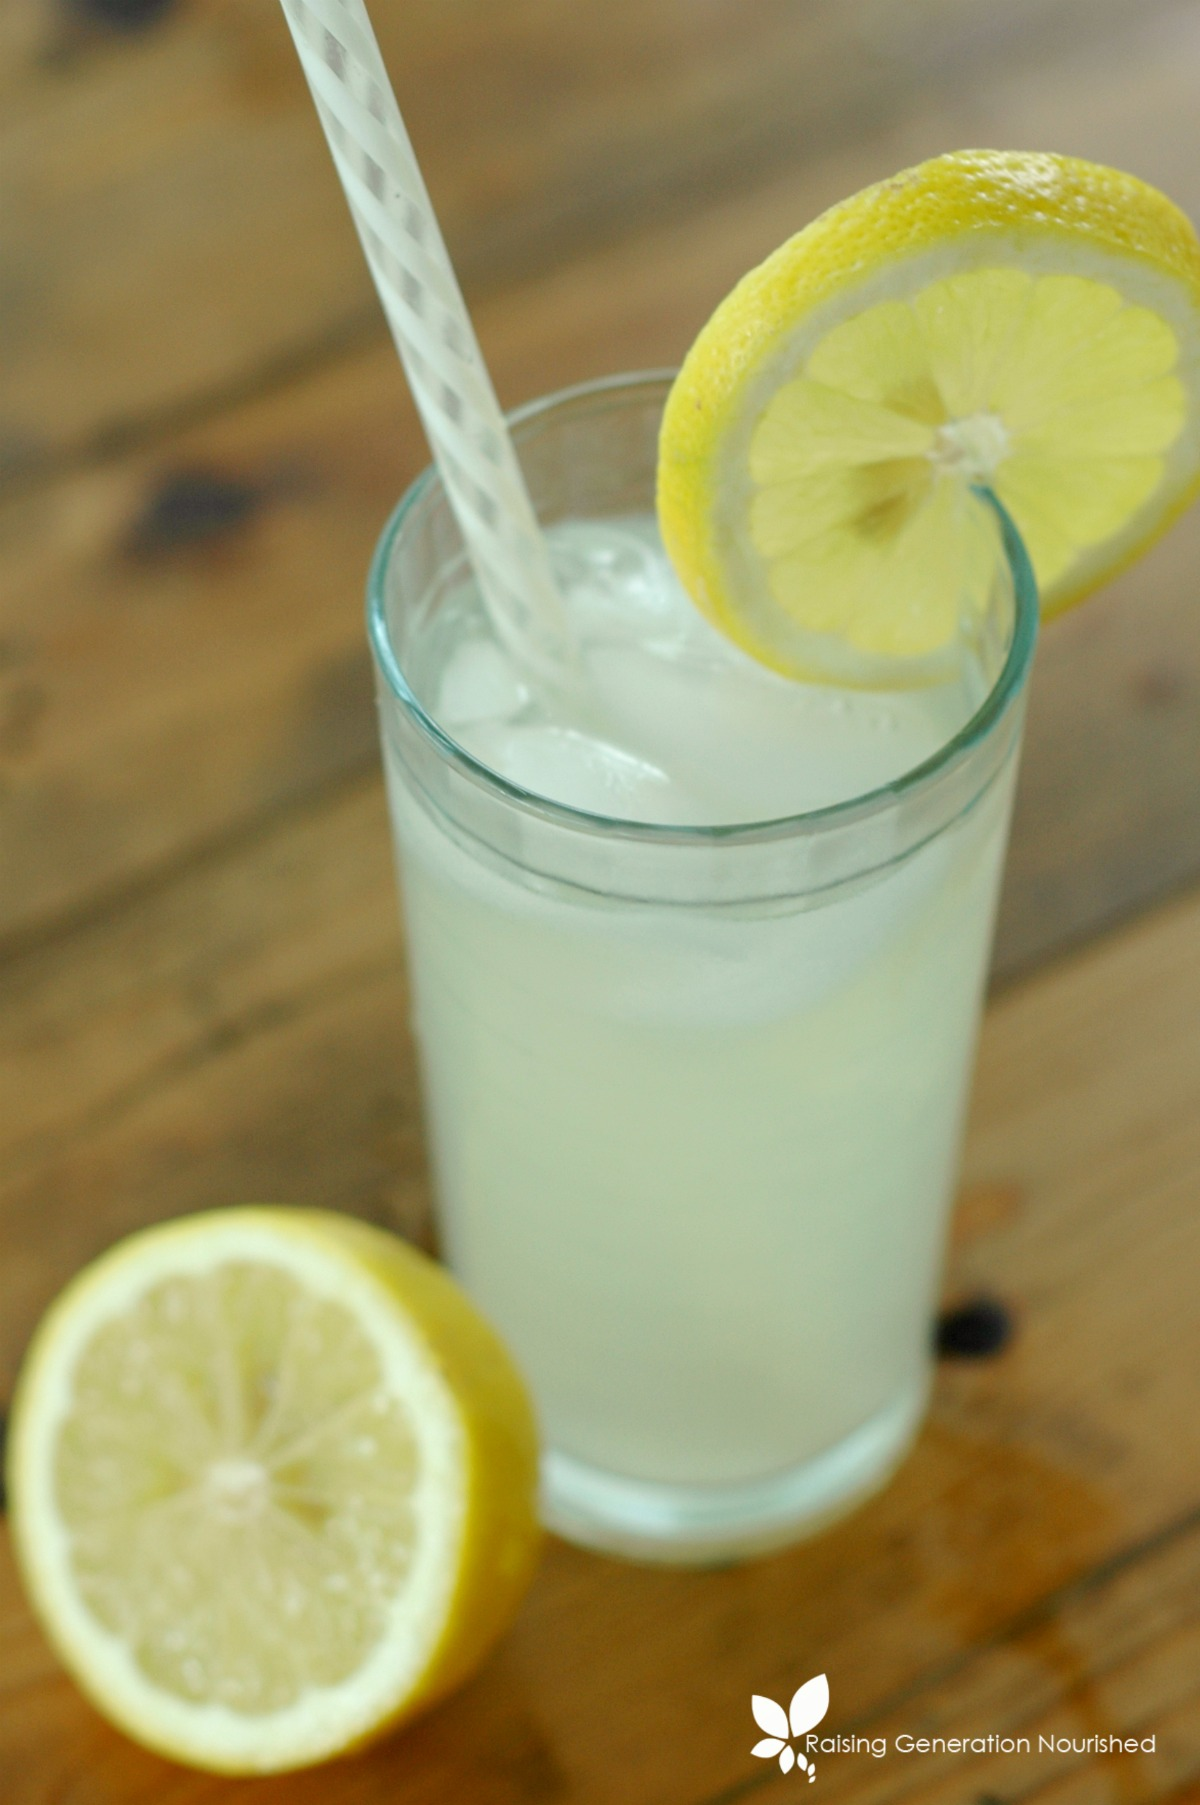 Simple Fermented Lemonade :: Bring that classic summertime drink up a few notches with a big probiotic boost from this simple fermented lemonade! Refreshing *and* nourishing all in one!